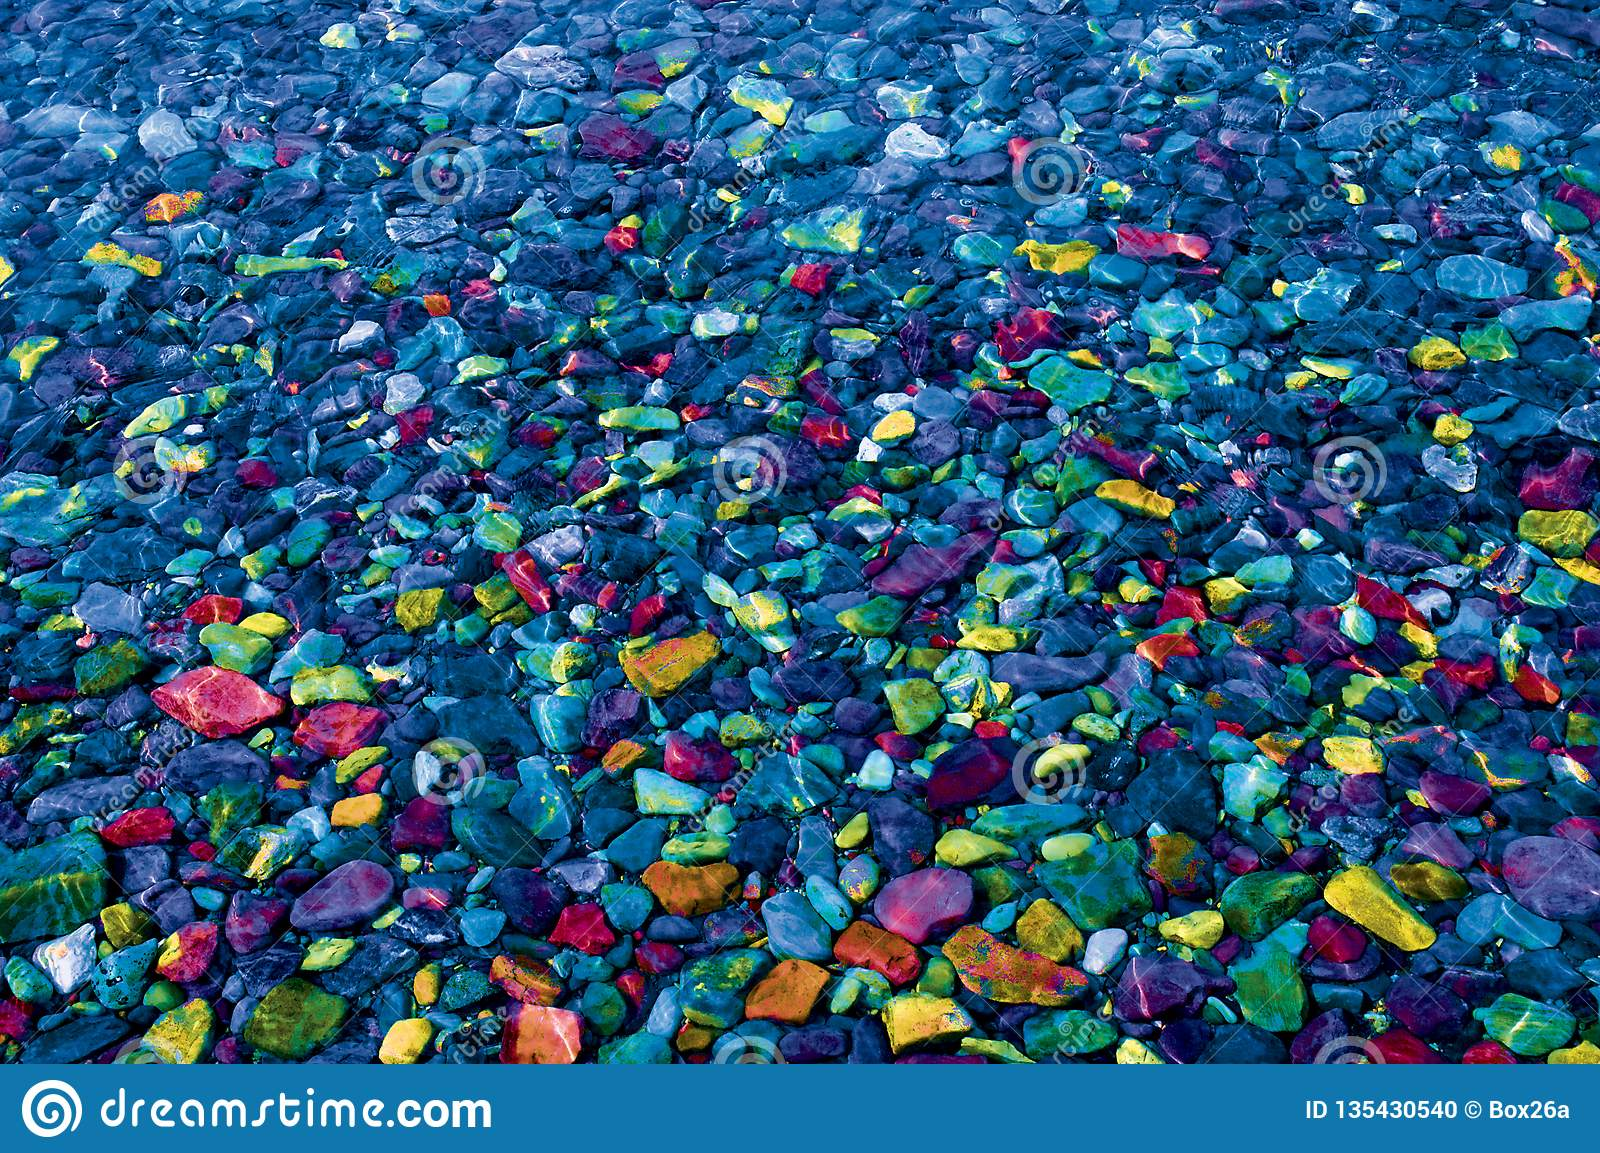 Colorful Rocks and Stones for Background